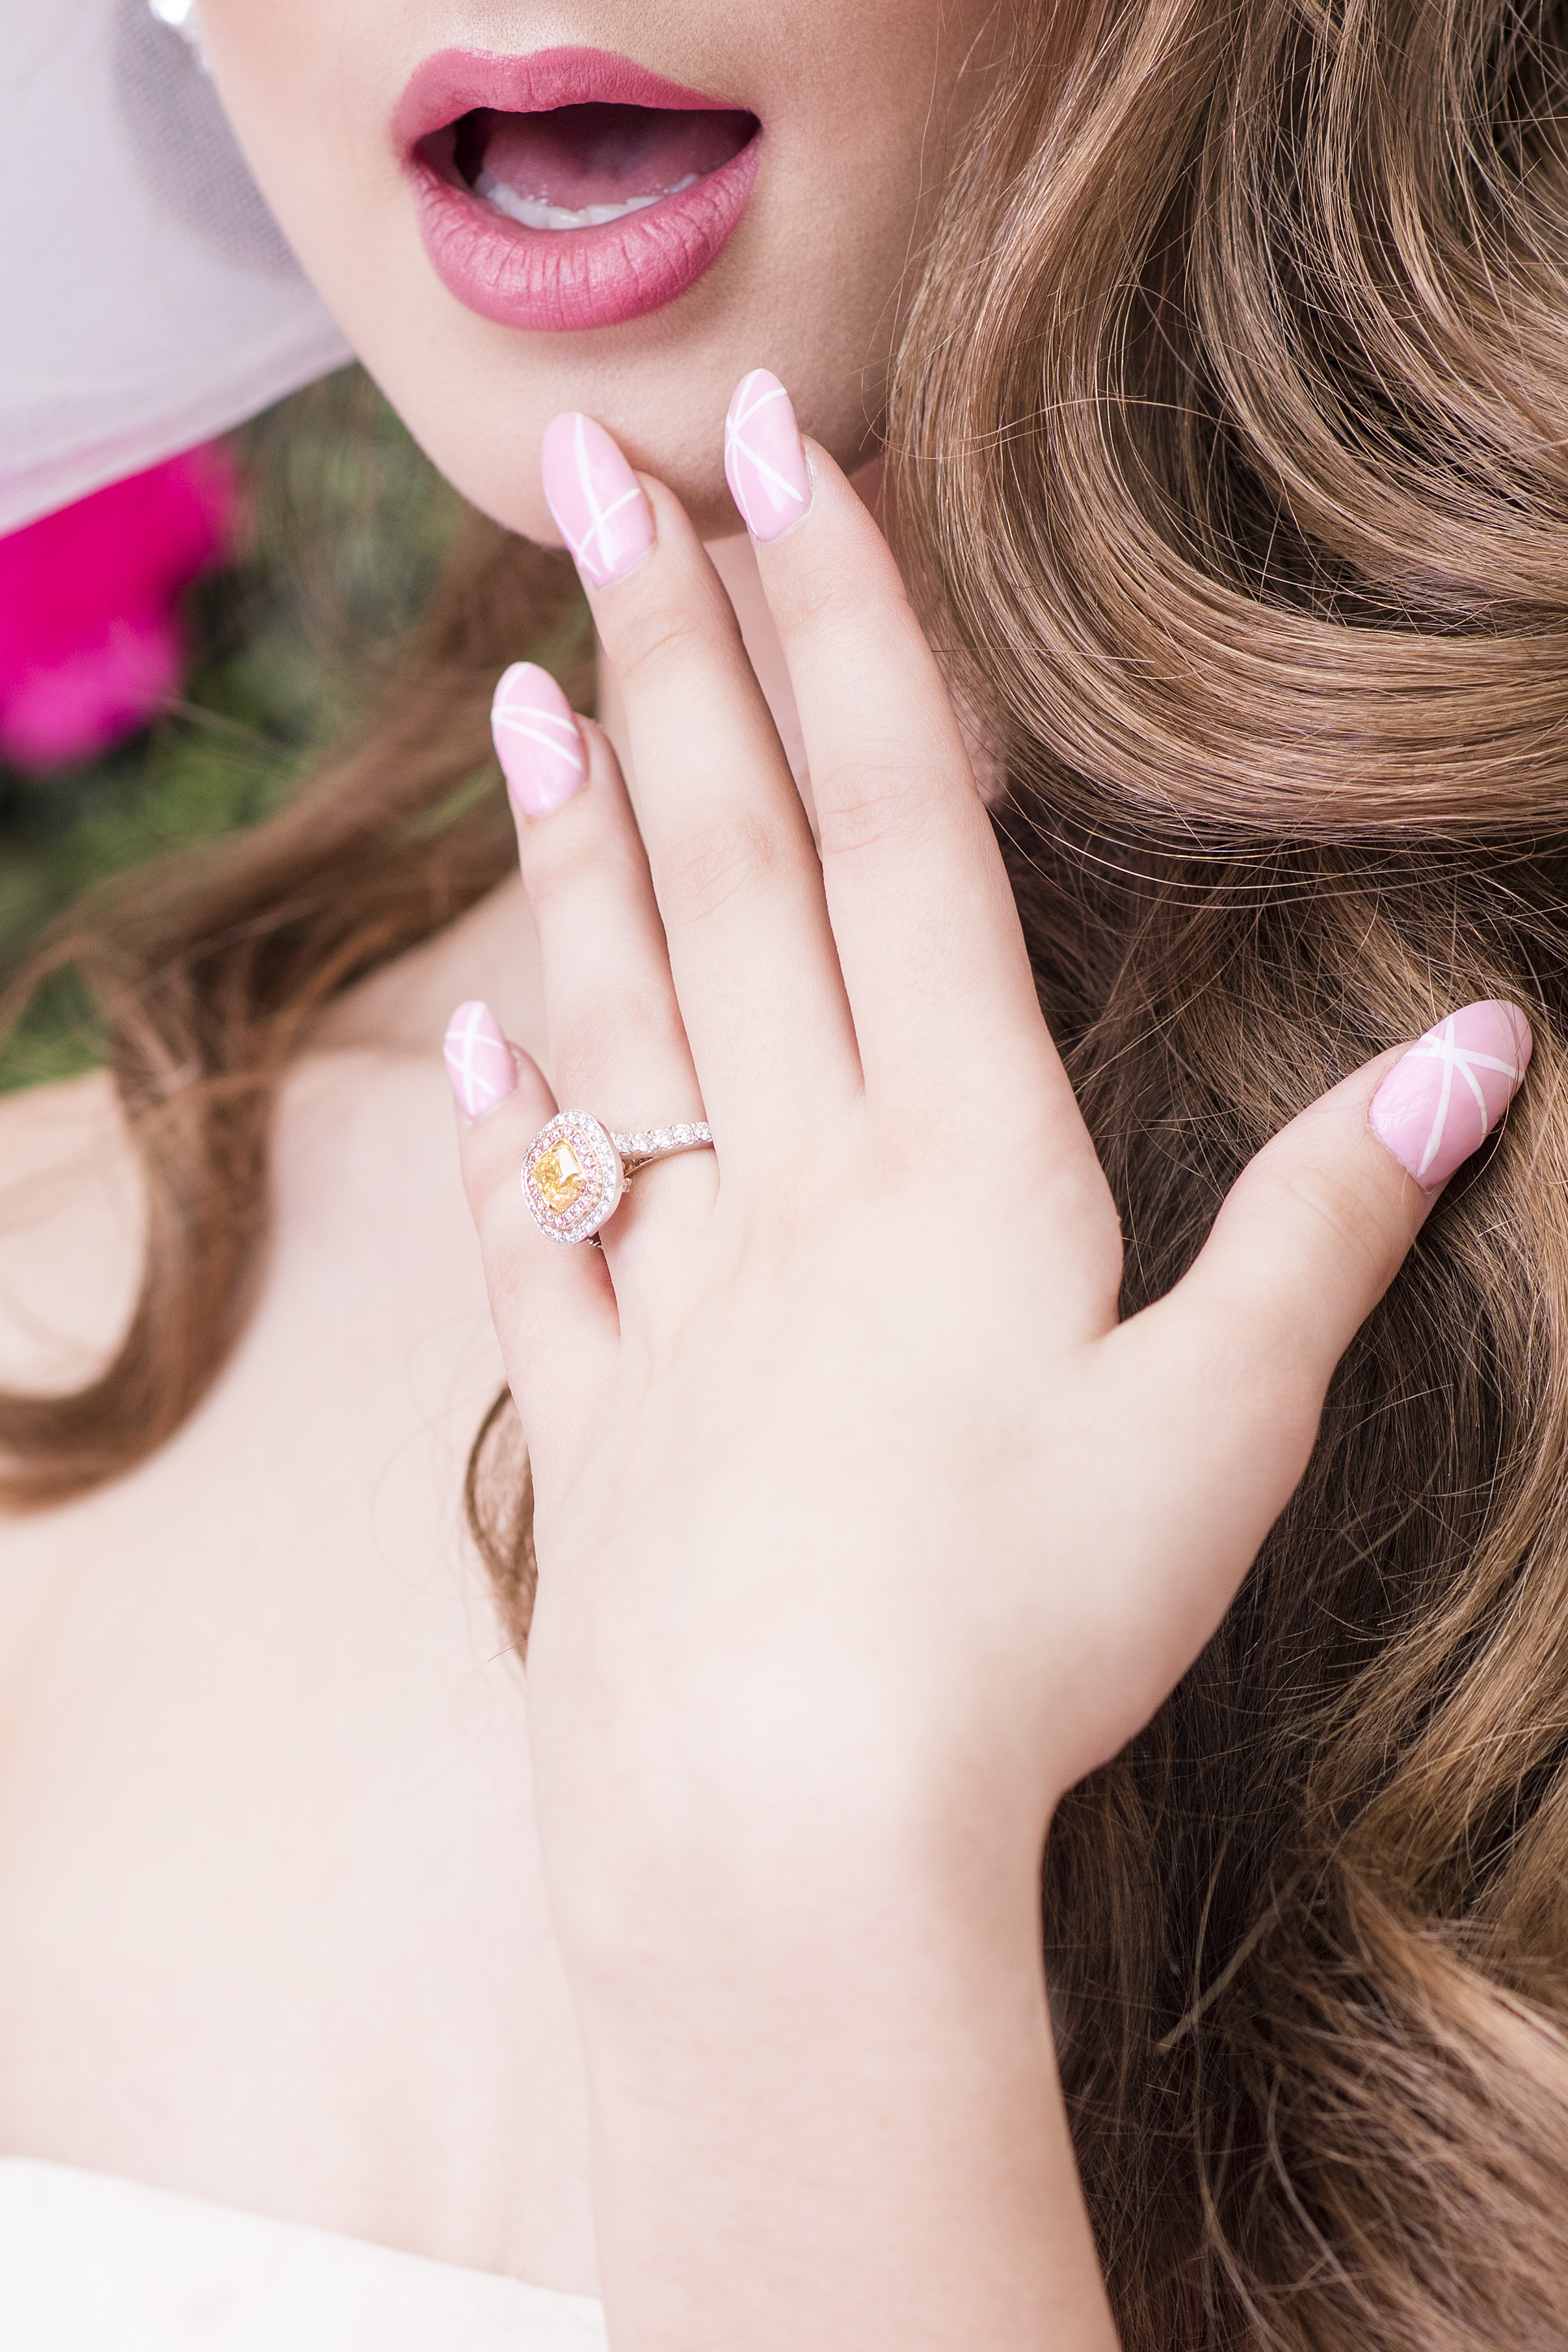 August In Bloom - Bridal ring & nail art - Dior Darling (Wedluxe)